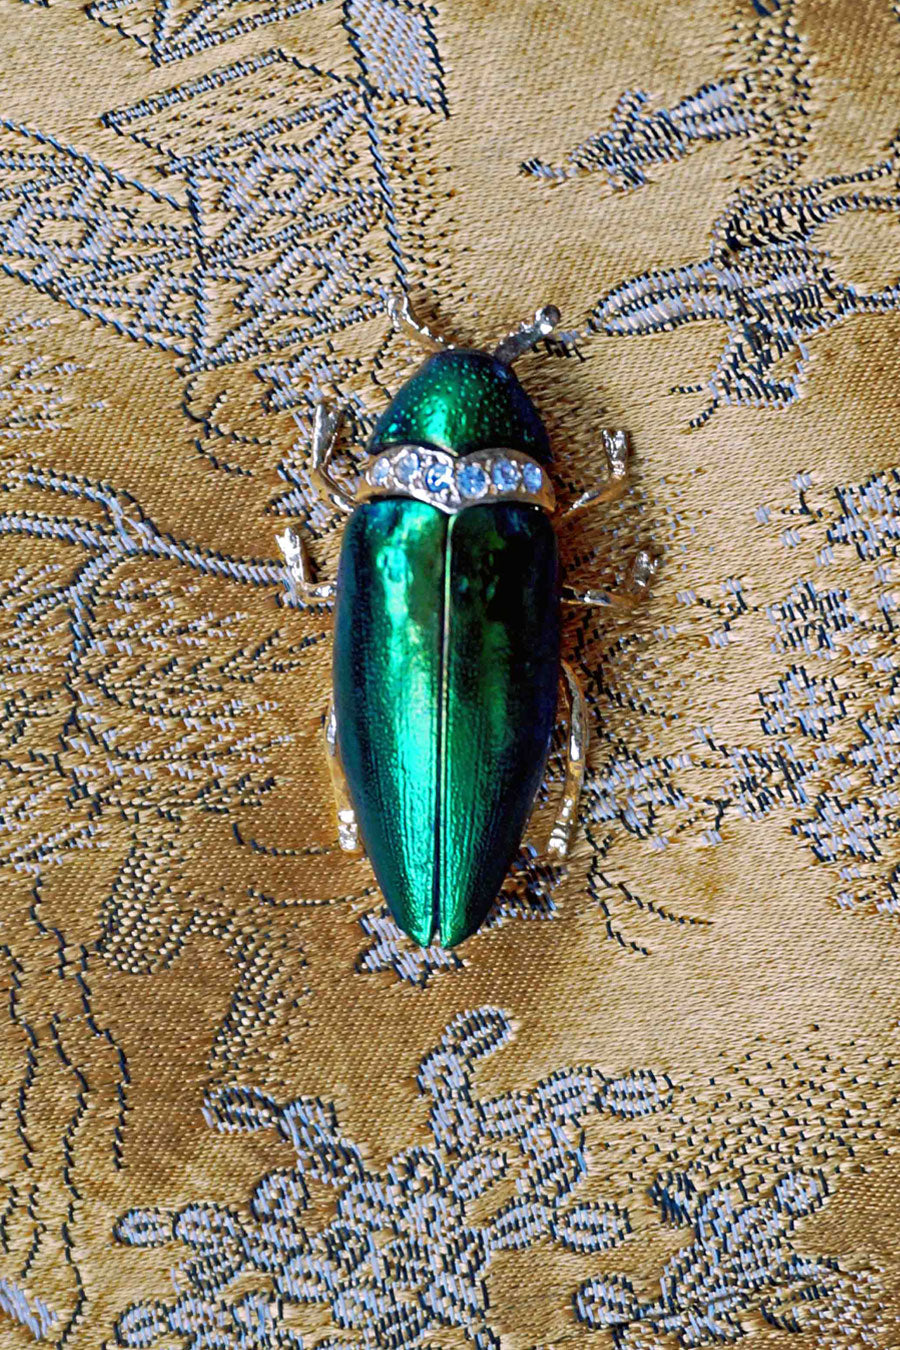 Vintage Iridescent Green Scarab Beetle Brooch, Green Beetle Pin Brooch Gift For Her - Ada's Attic Vintage-